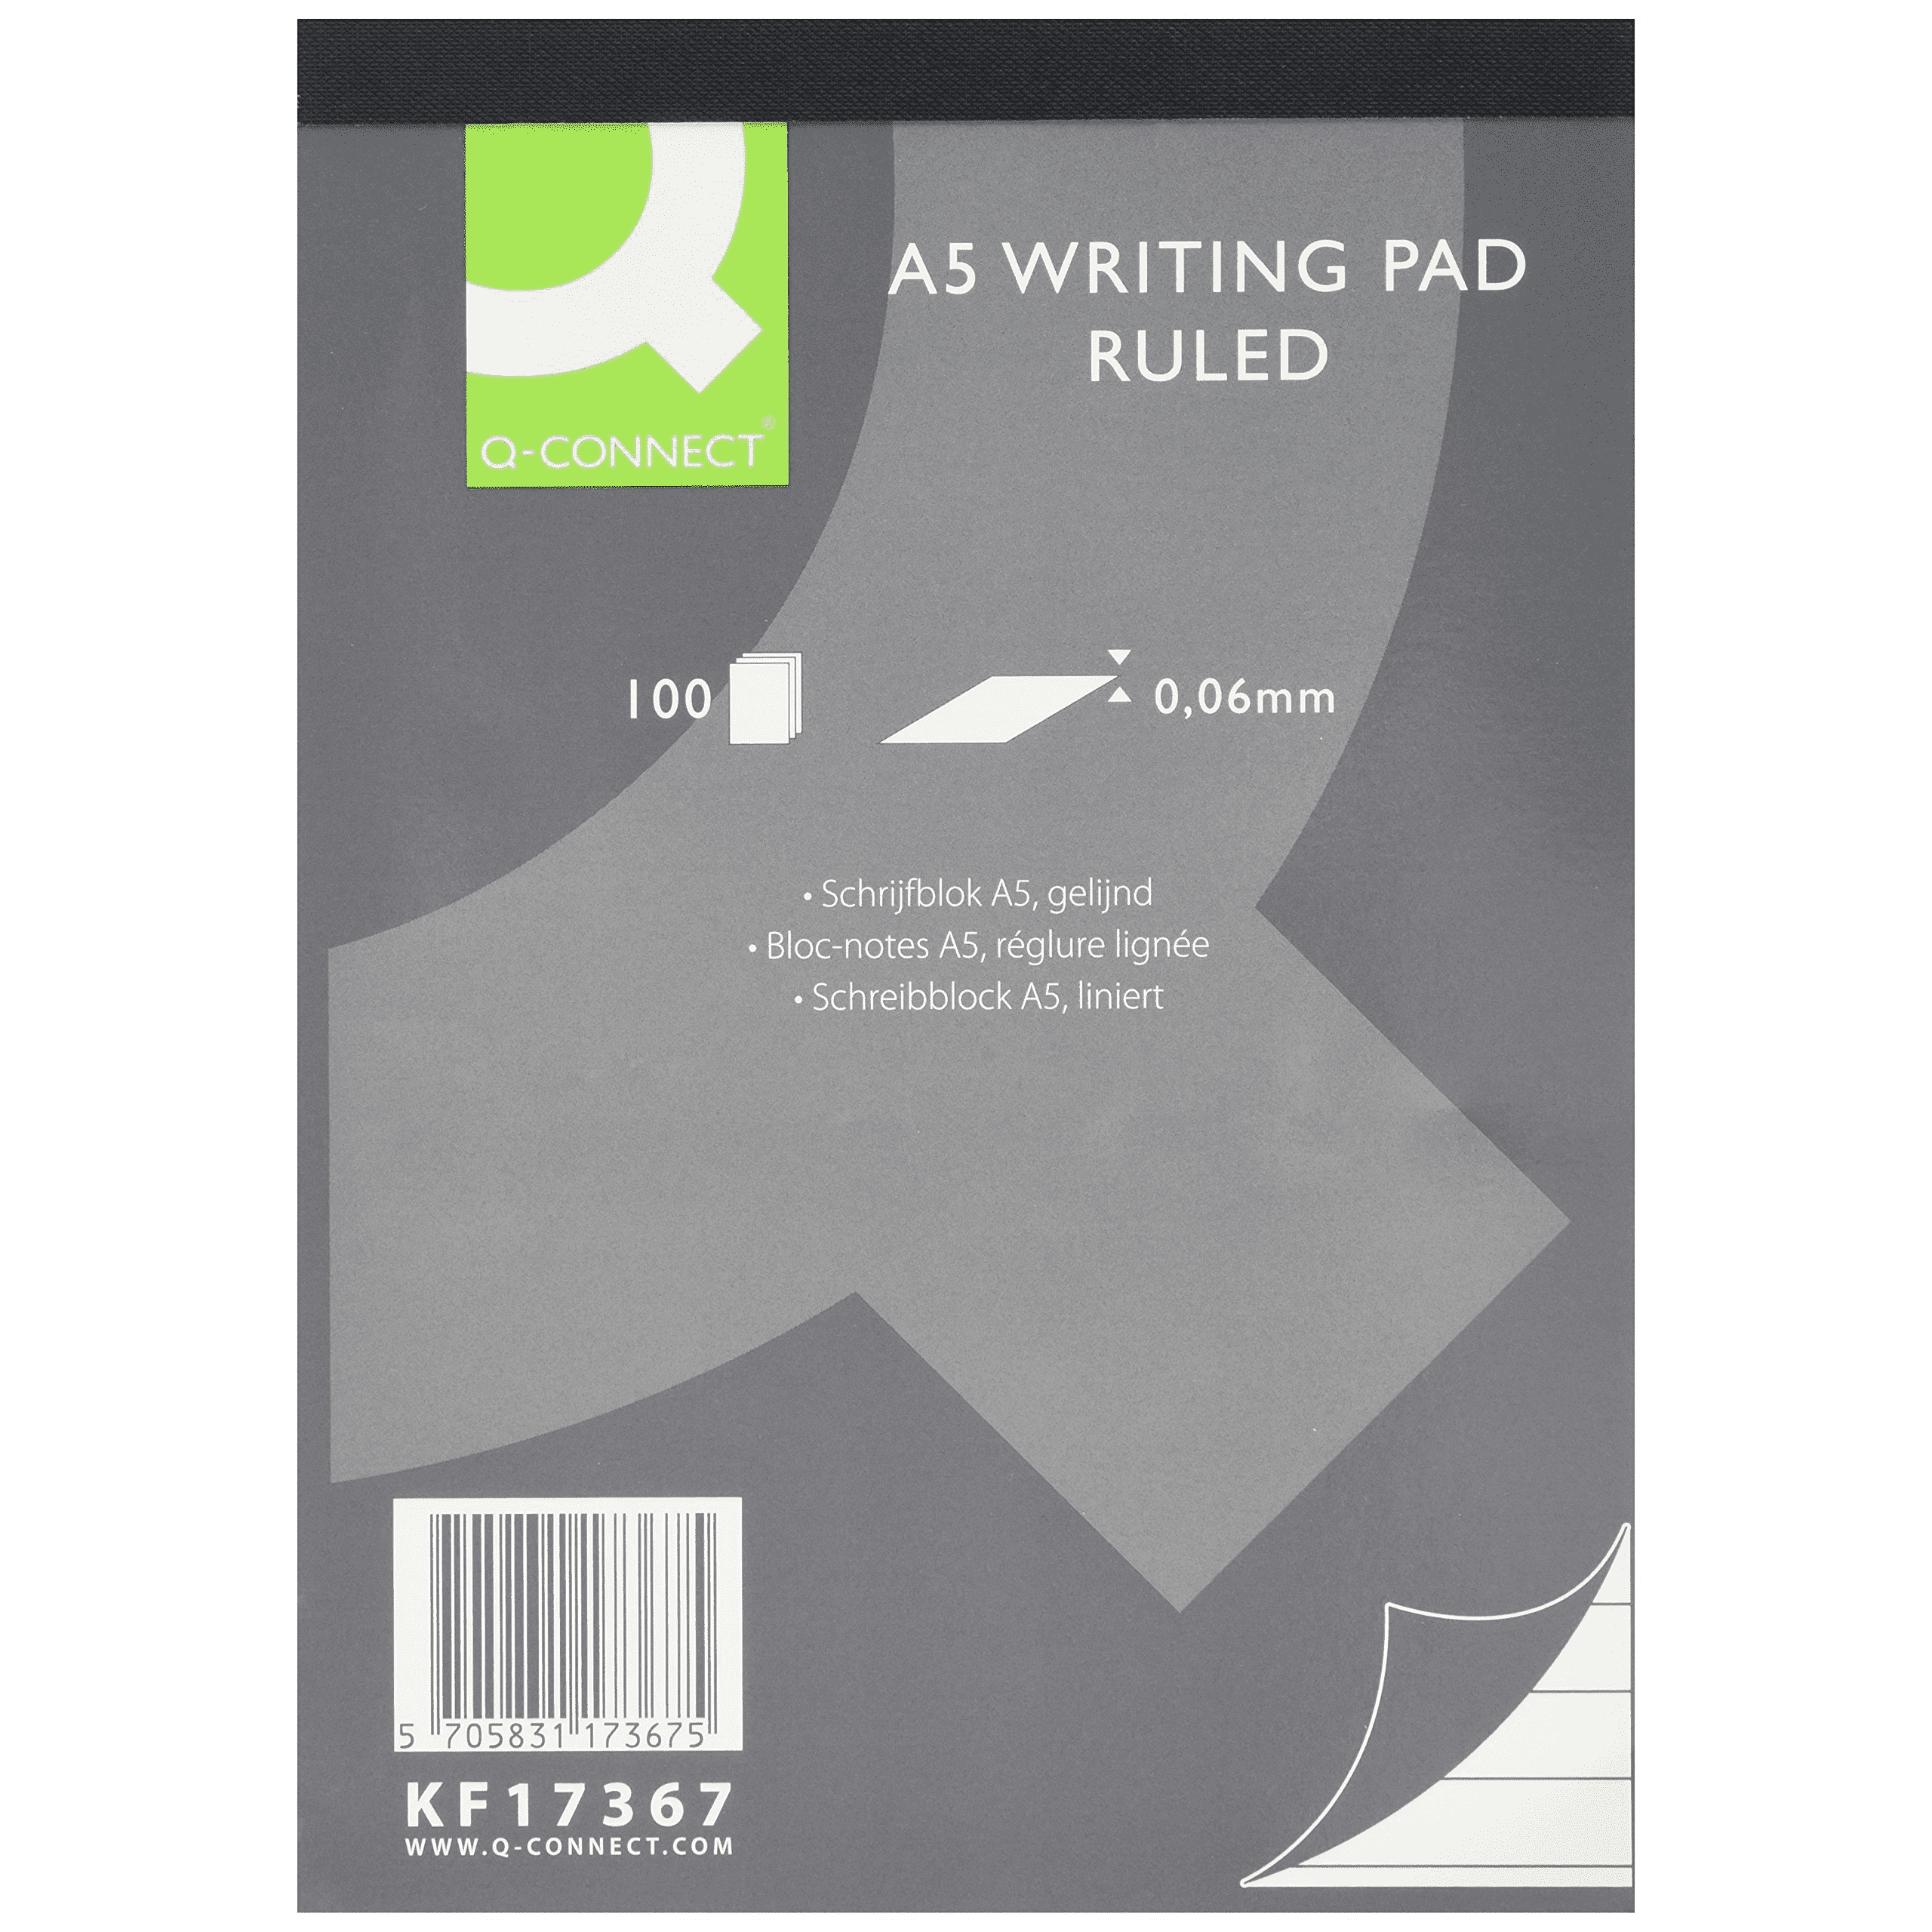 Q-Connect A5 Refill Pad Ruled 70gsm 100 Sheets PK5